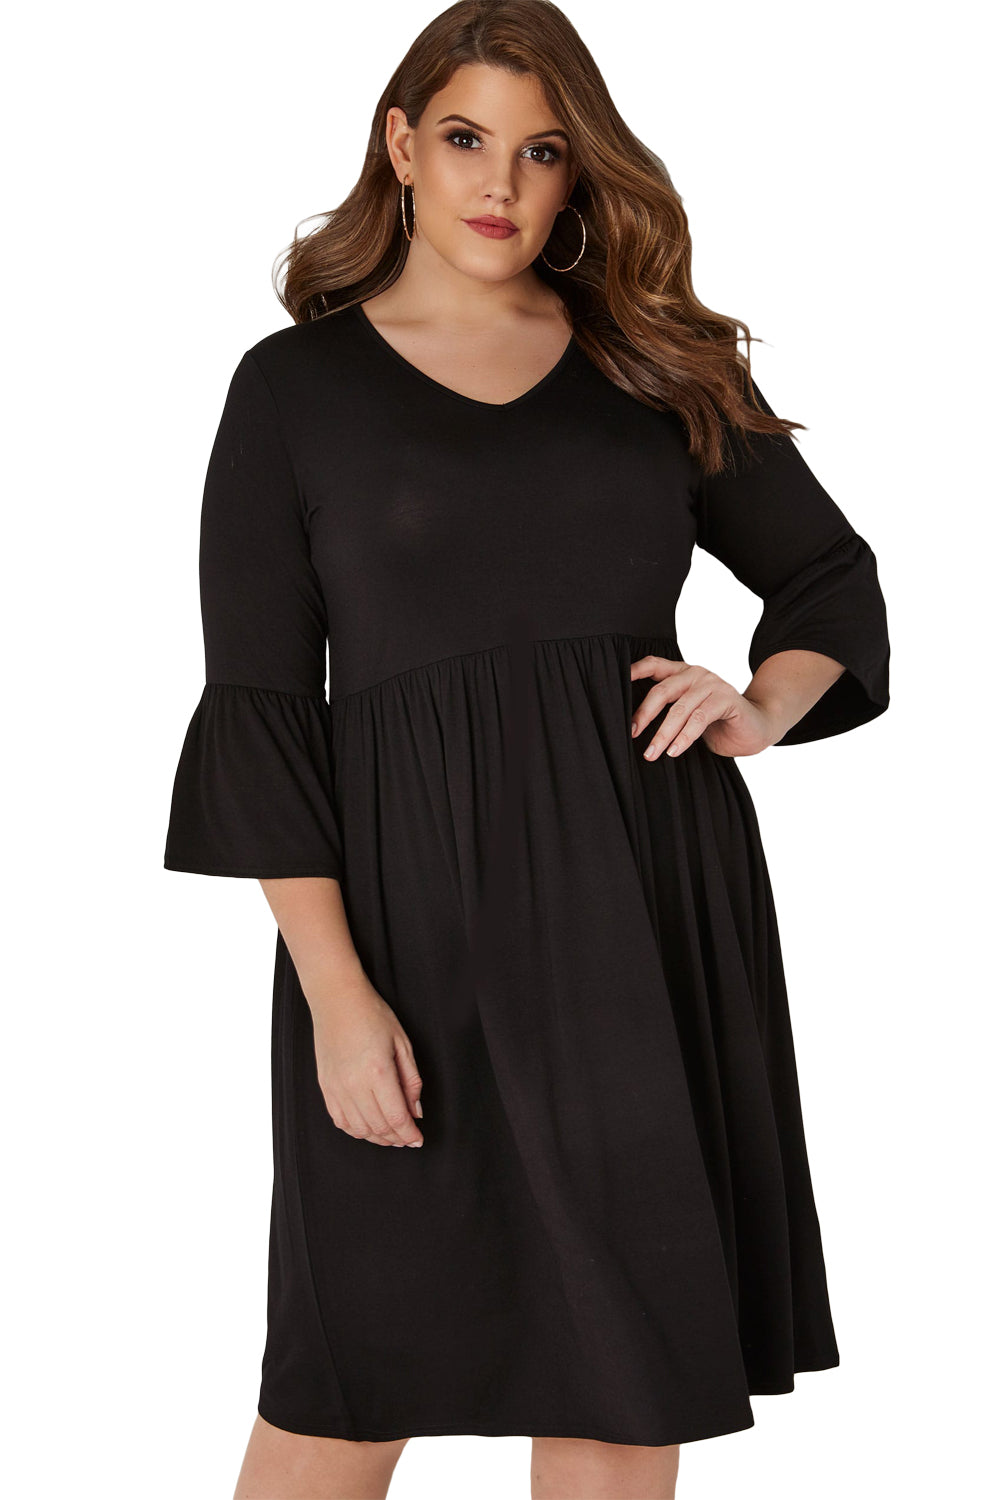 Black Flute Sleeves Plus Size Jersey Dress - Its Trendy Frenzy